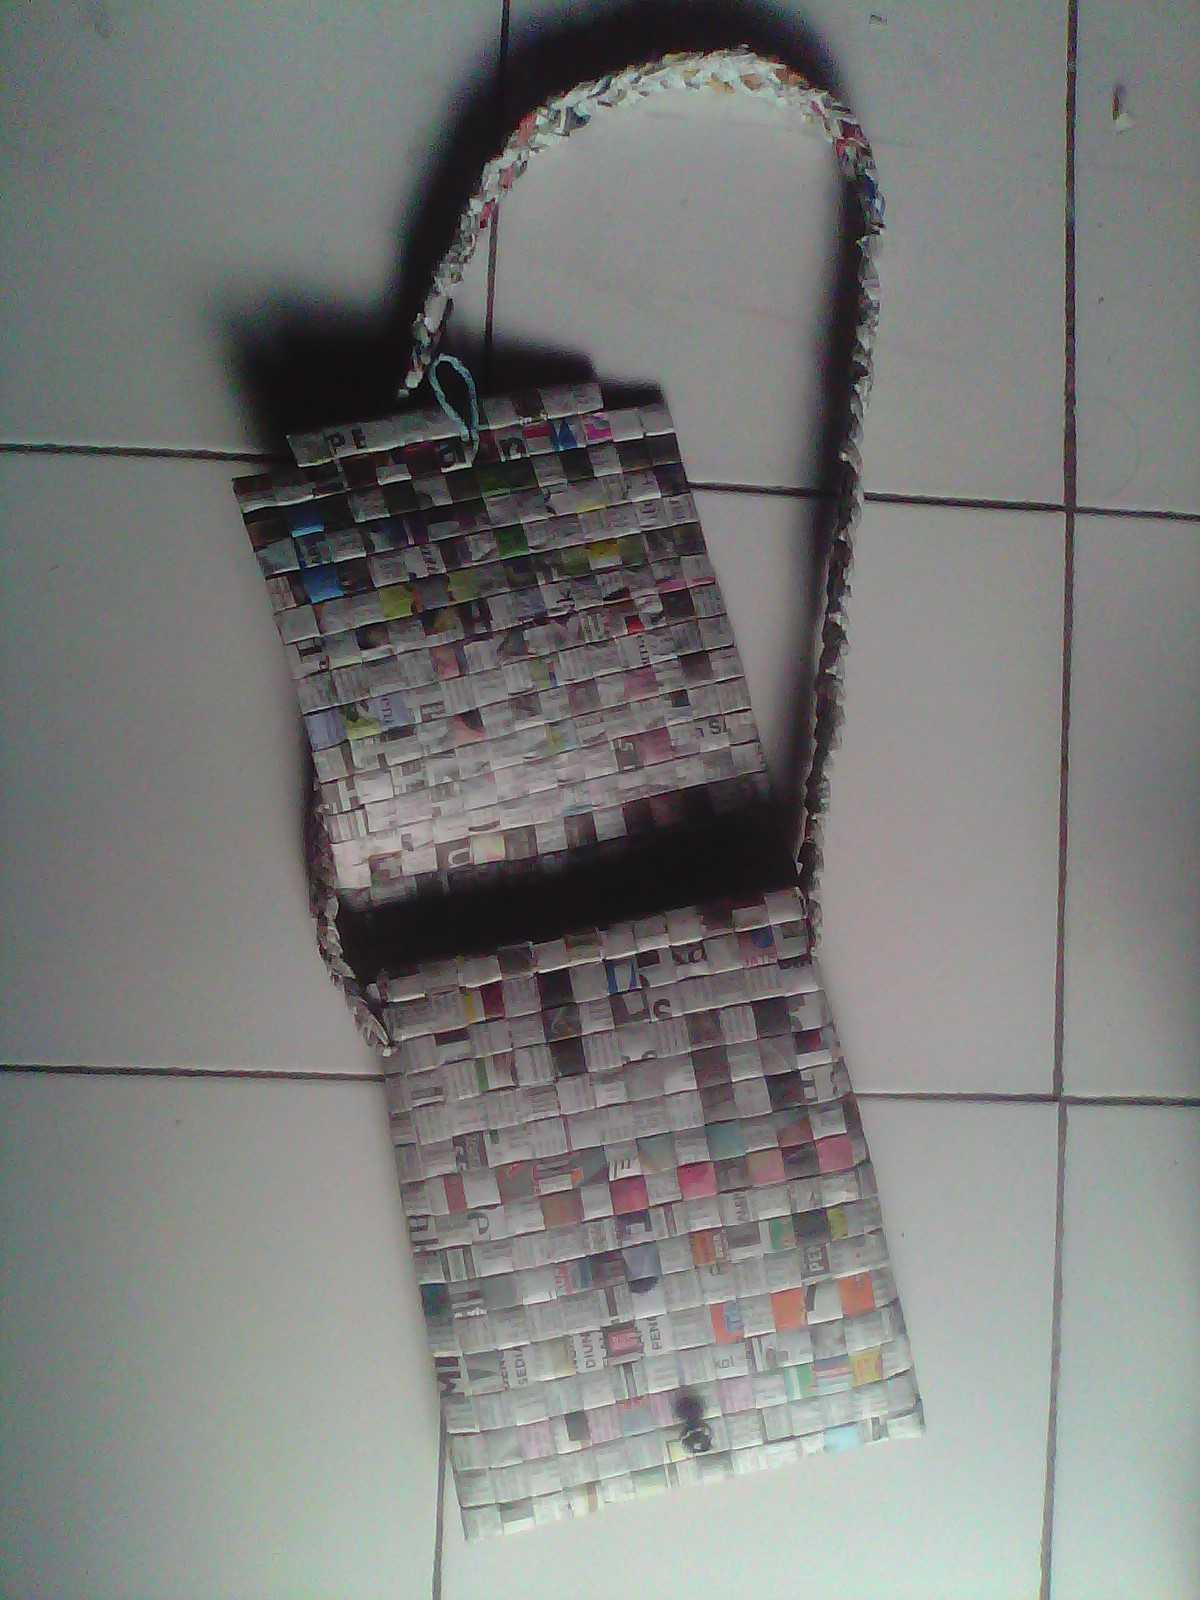 Shoulder bag recycled newspaper craft for sale item 274539 for Recycled crafts to sell